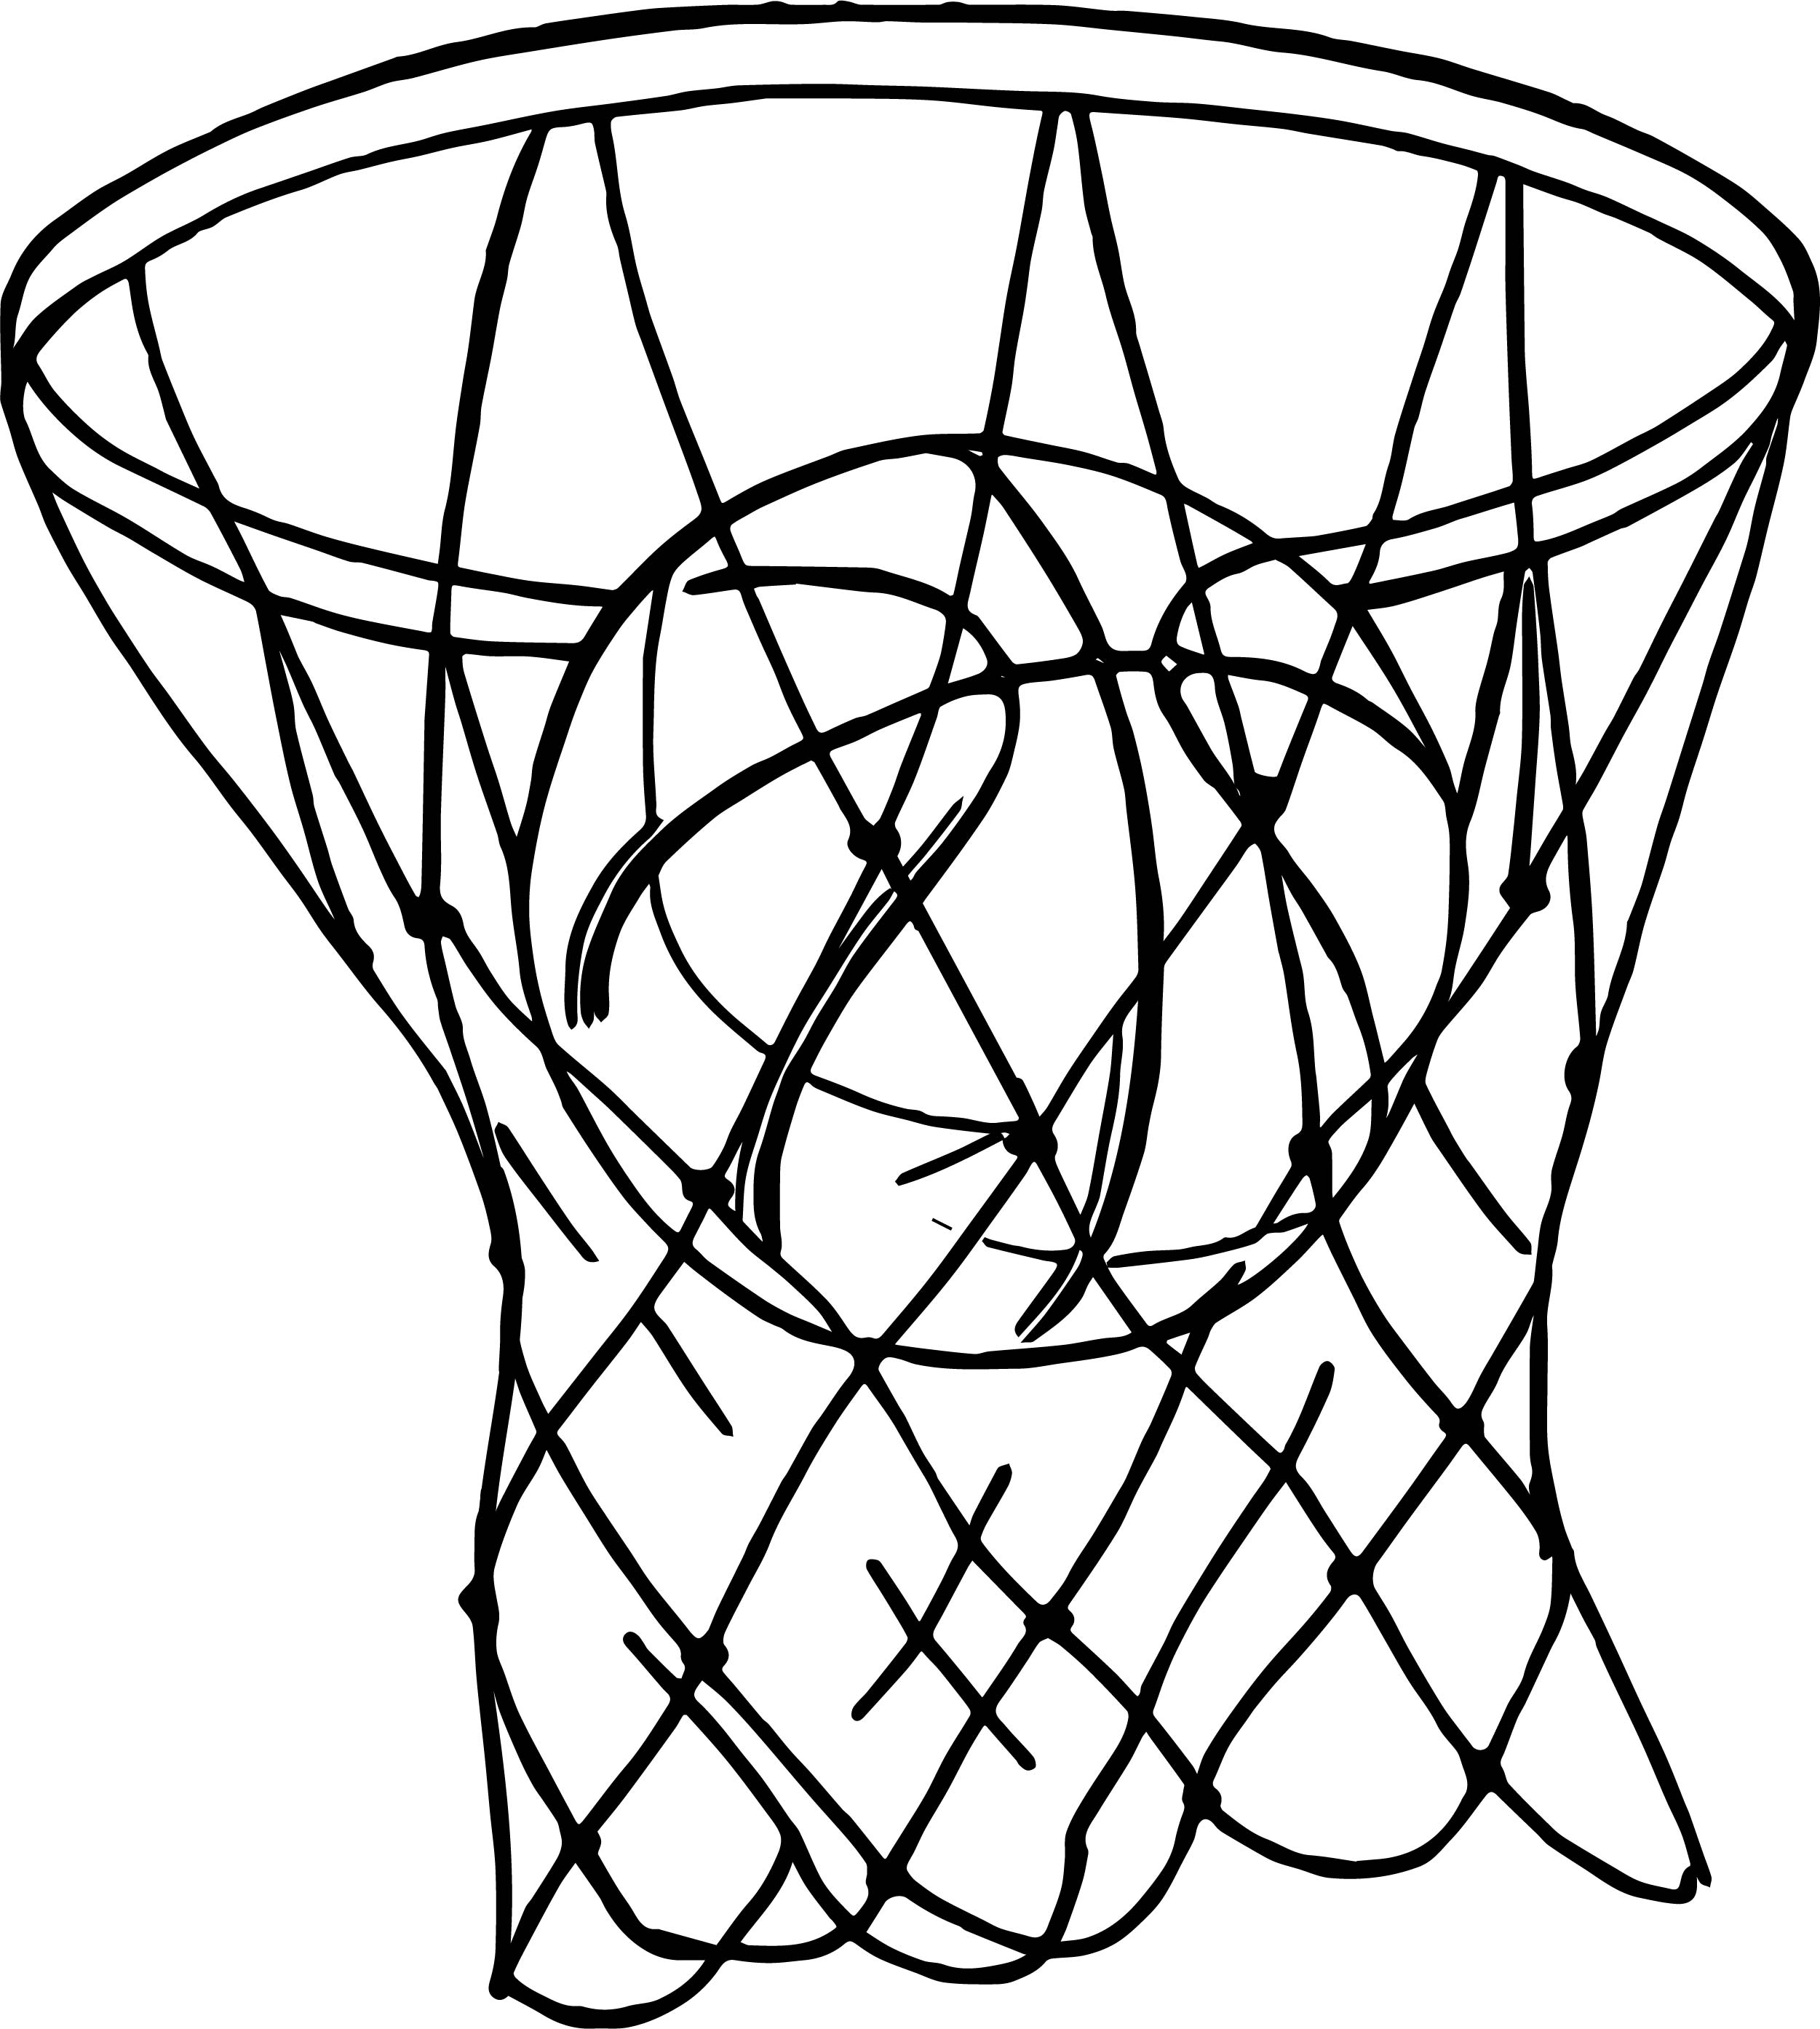 Basket playing basketball coloring page for Basketball coloring page